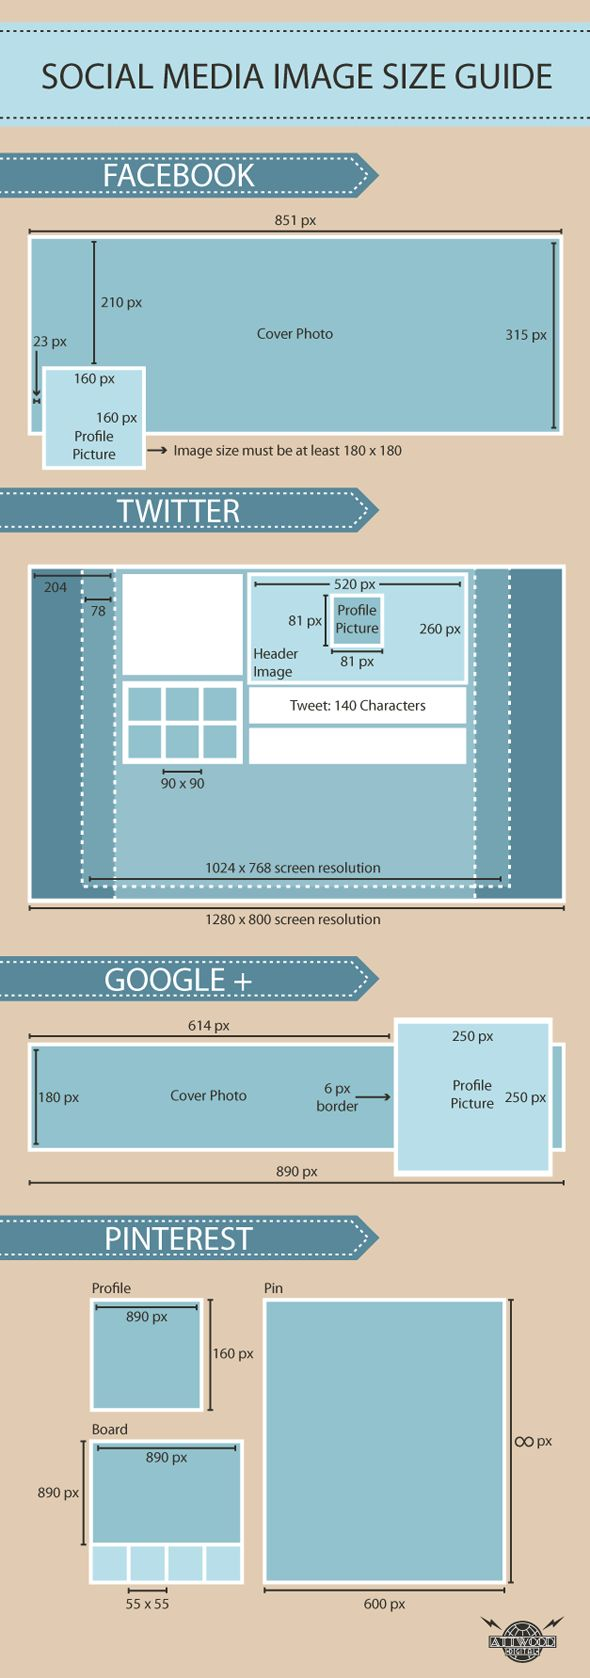 Social Media Image Size Guide From AttwoodDigital.com